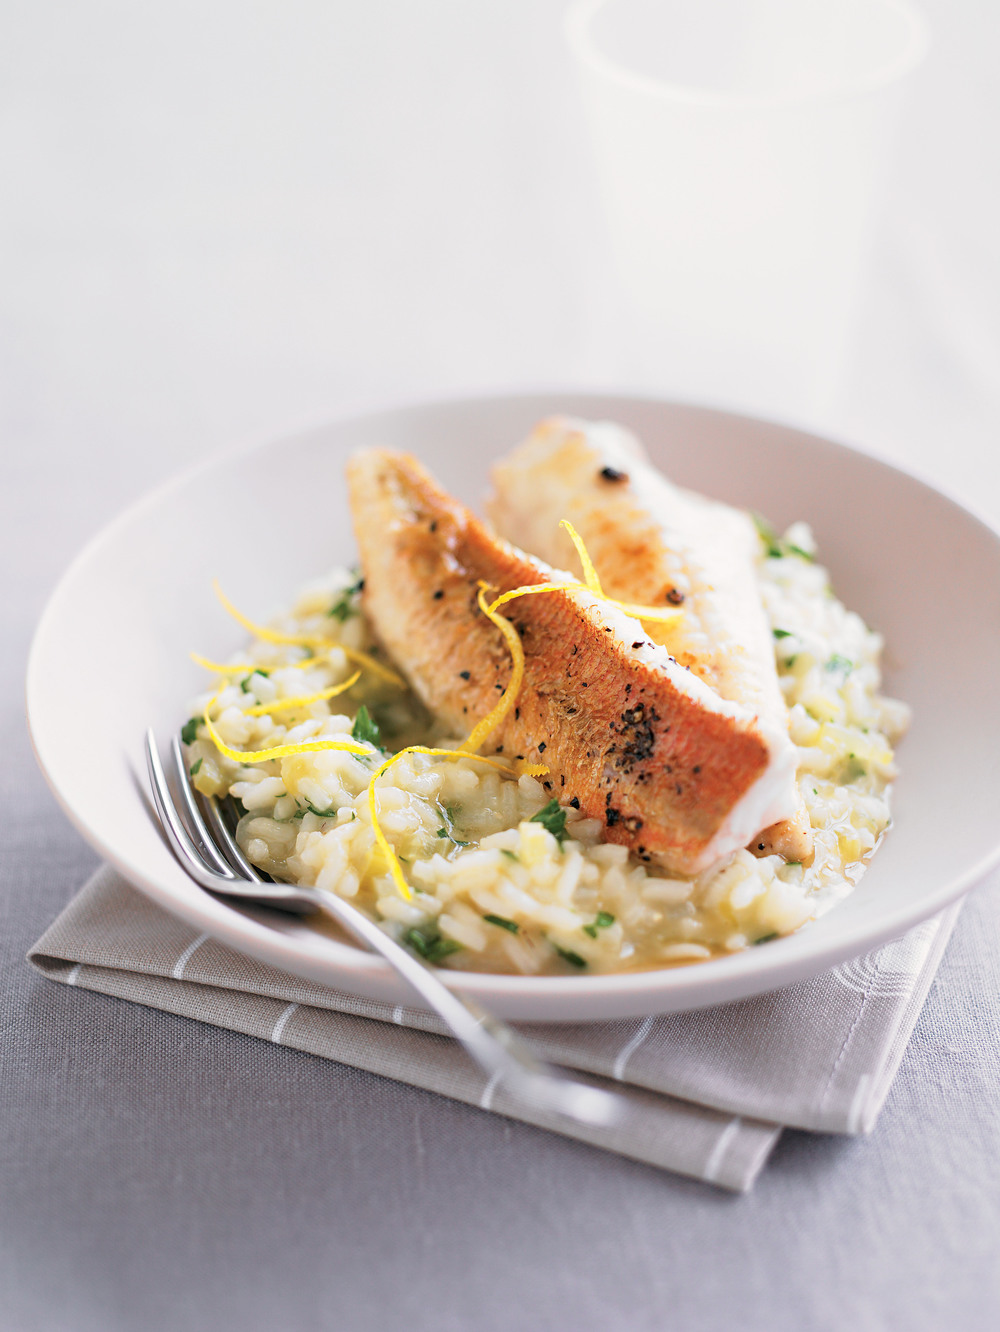 Gurnard with Parsley Risotto